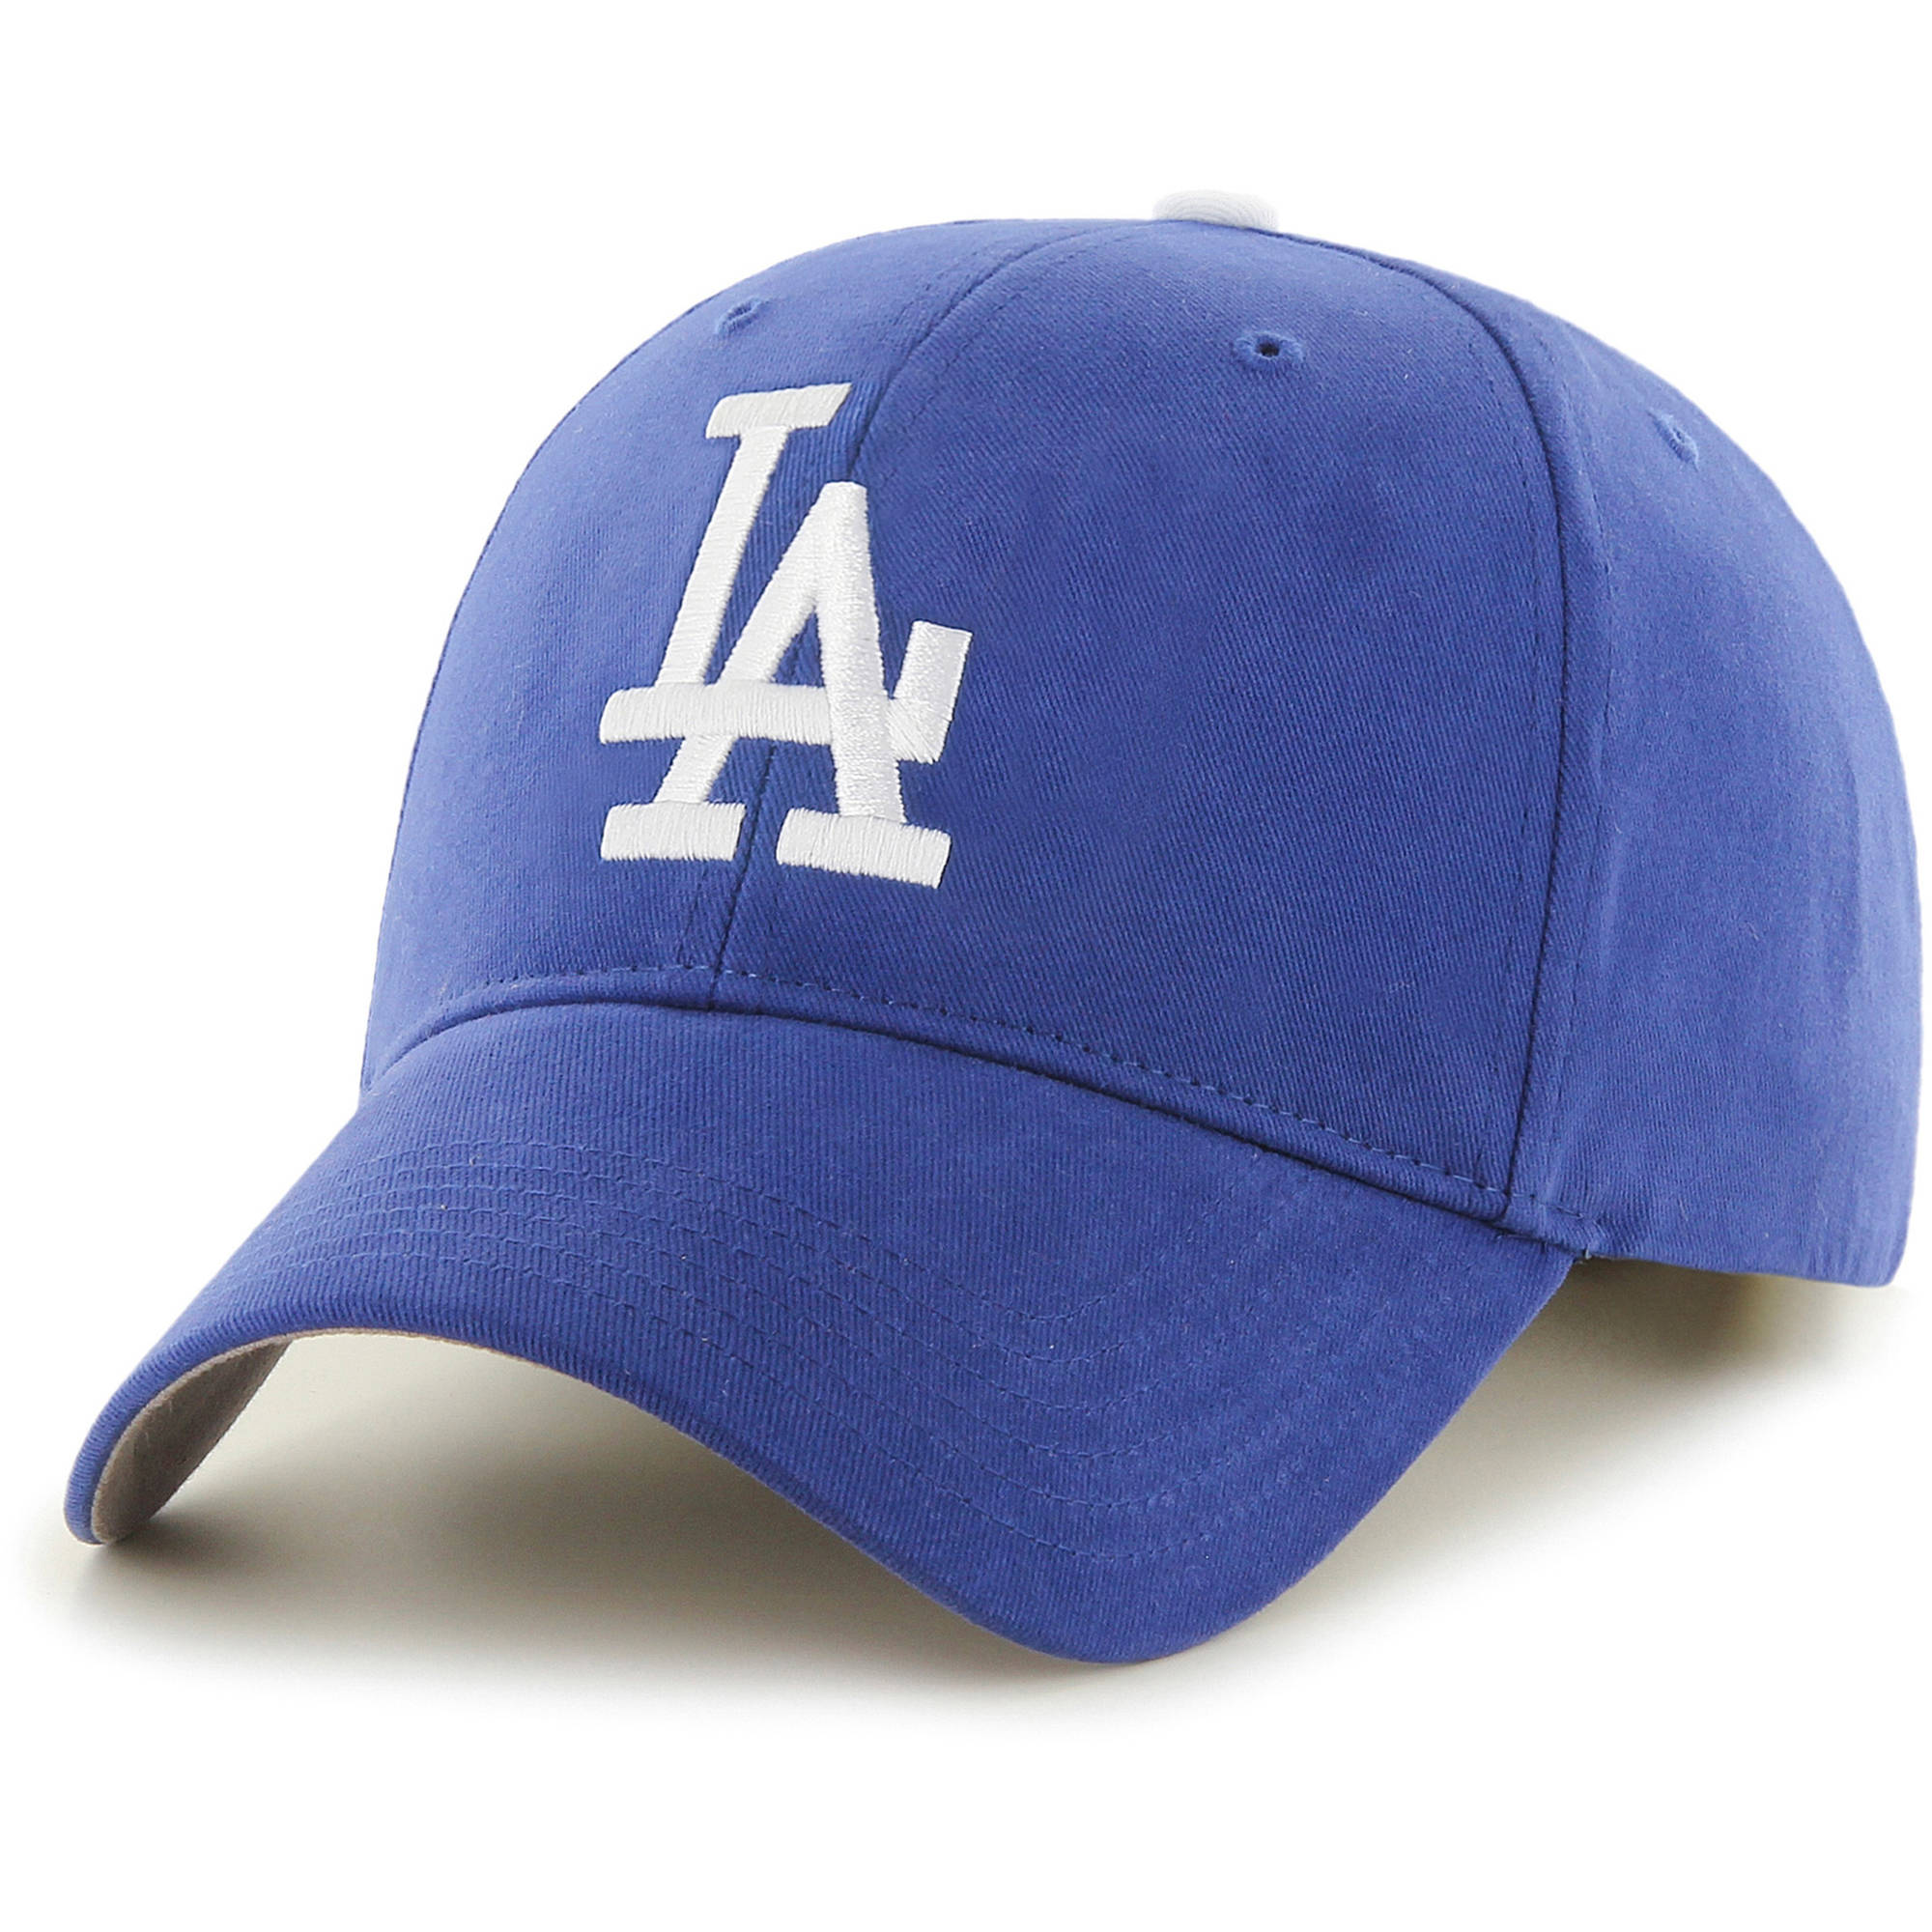 MLB Los Angeles Dodgers Basic Cap / Hat by Fan Favorite